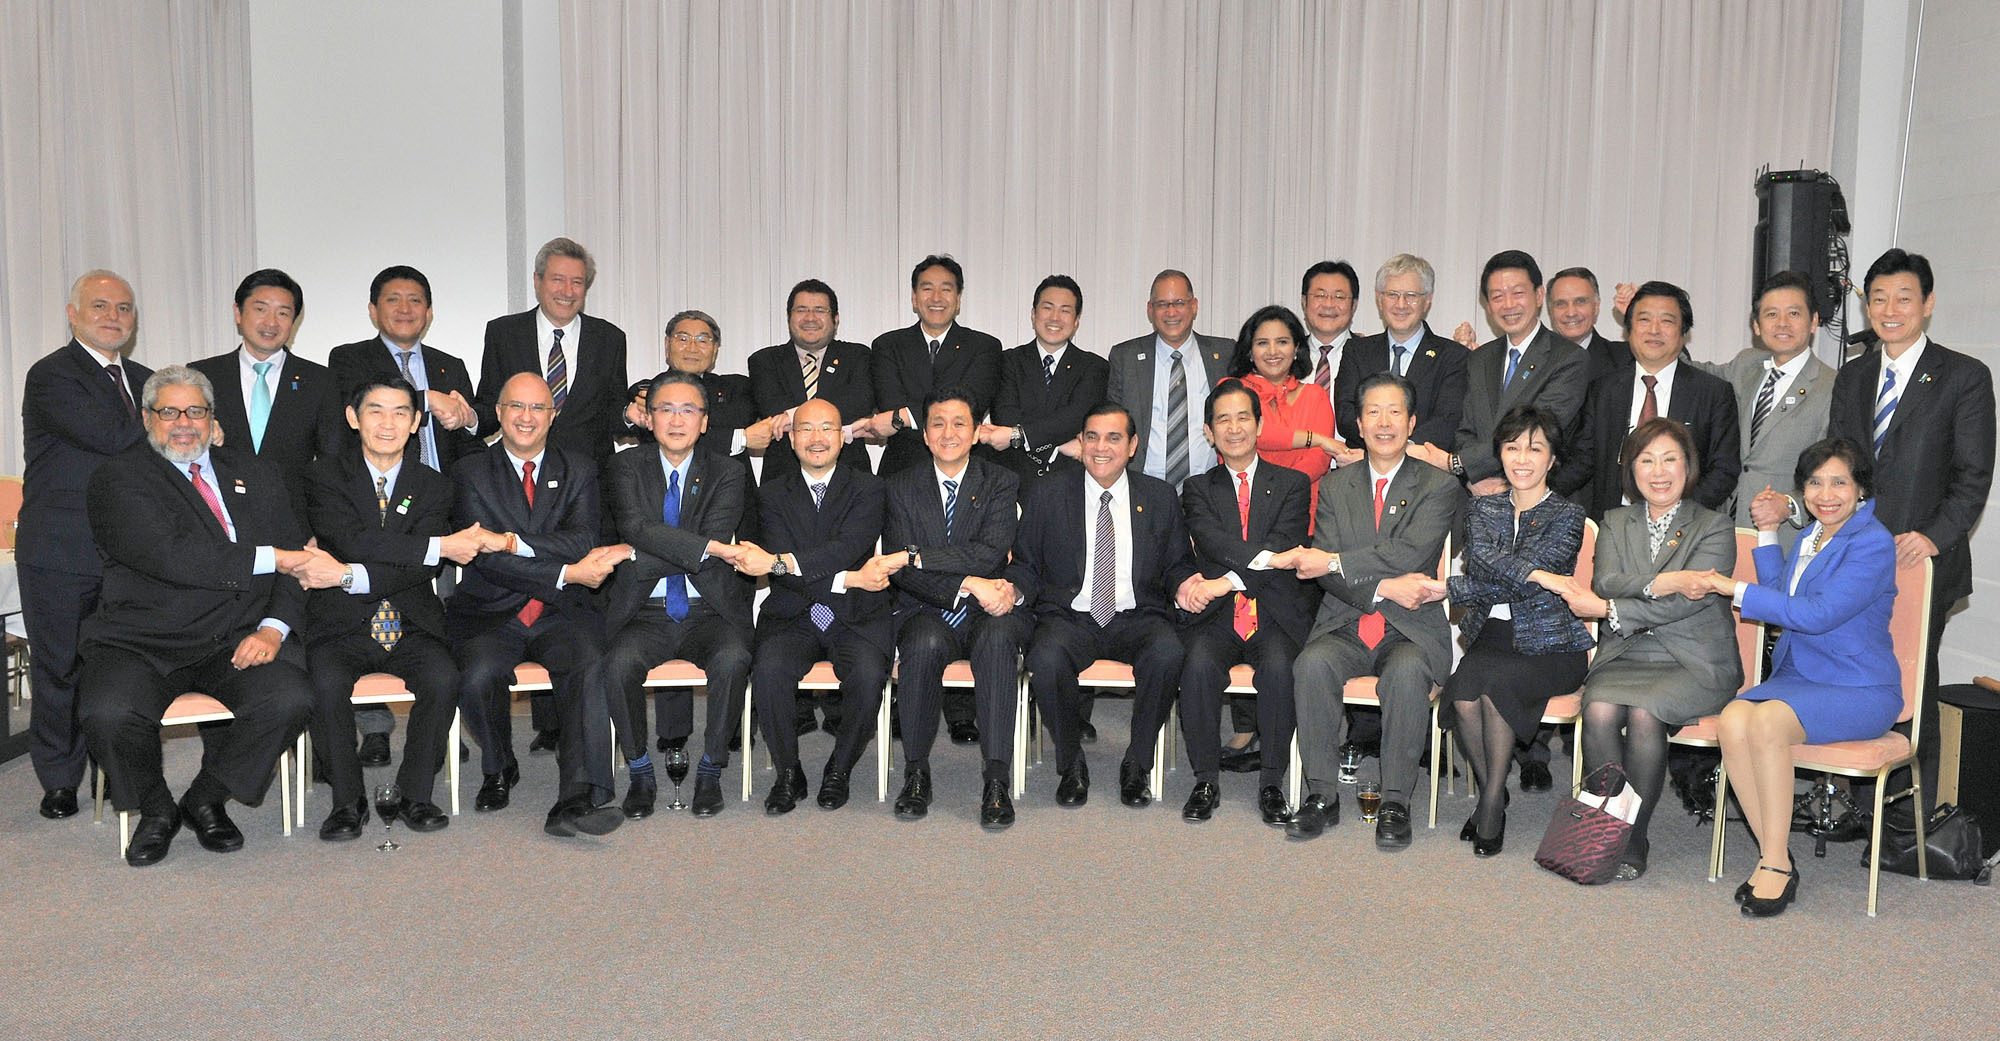 Diet members and several heads of mission of Latin American and Caribbean states, join hands during a friendly get-together at the Residence of Ambassadors in Nakameguro, Tokyo, on March 14. | YOSHIAKI MIURA